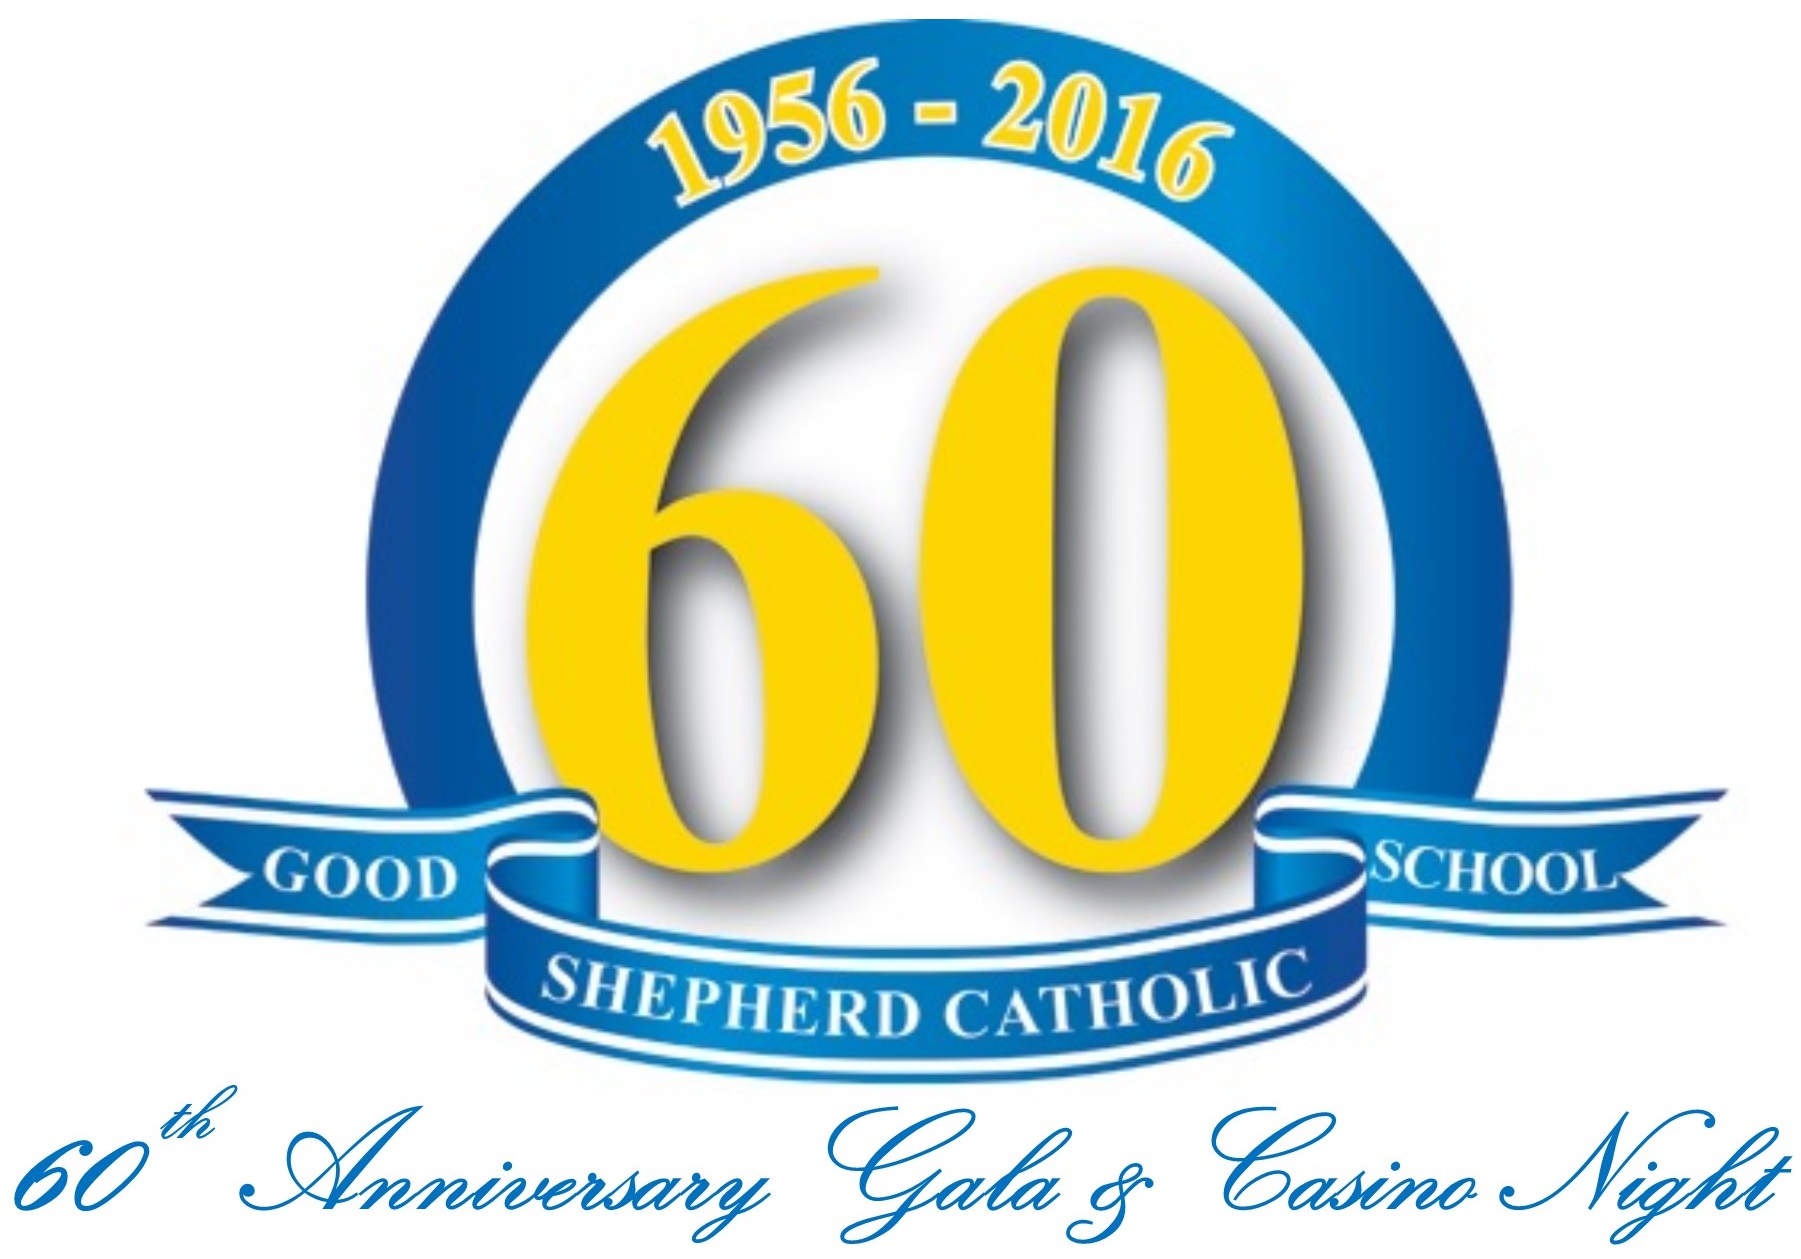 Attend the 60th Anniversary Gala